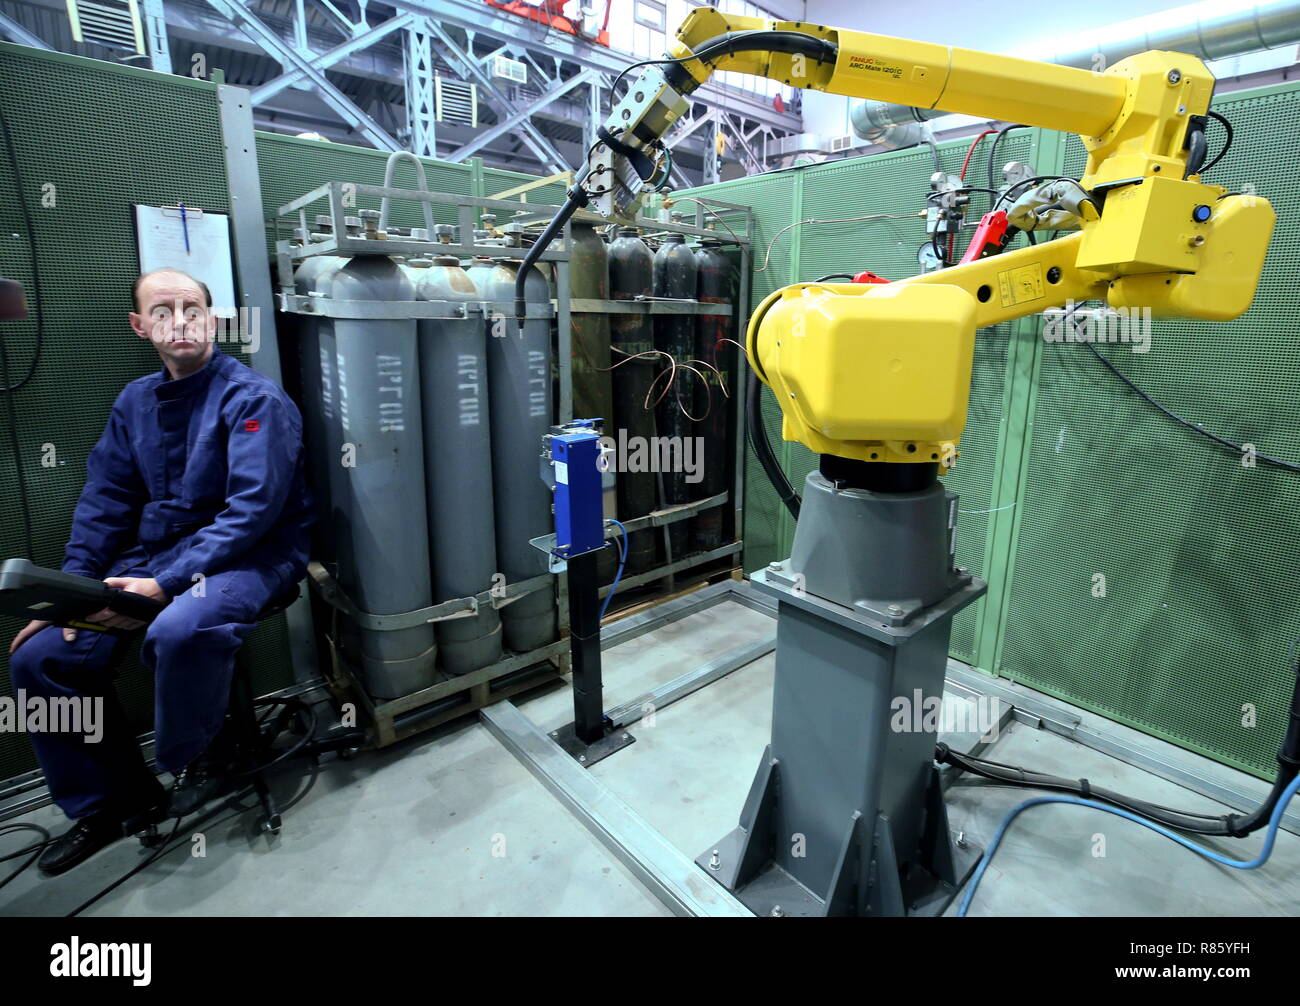 ST PETERSBURG, RUSSIA - DECEMBER 13, 2018: A worker of the